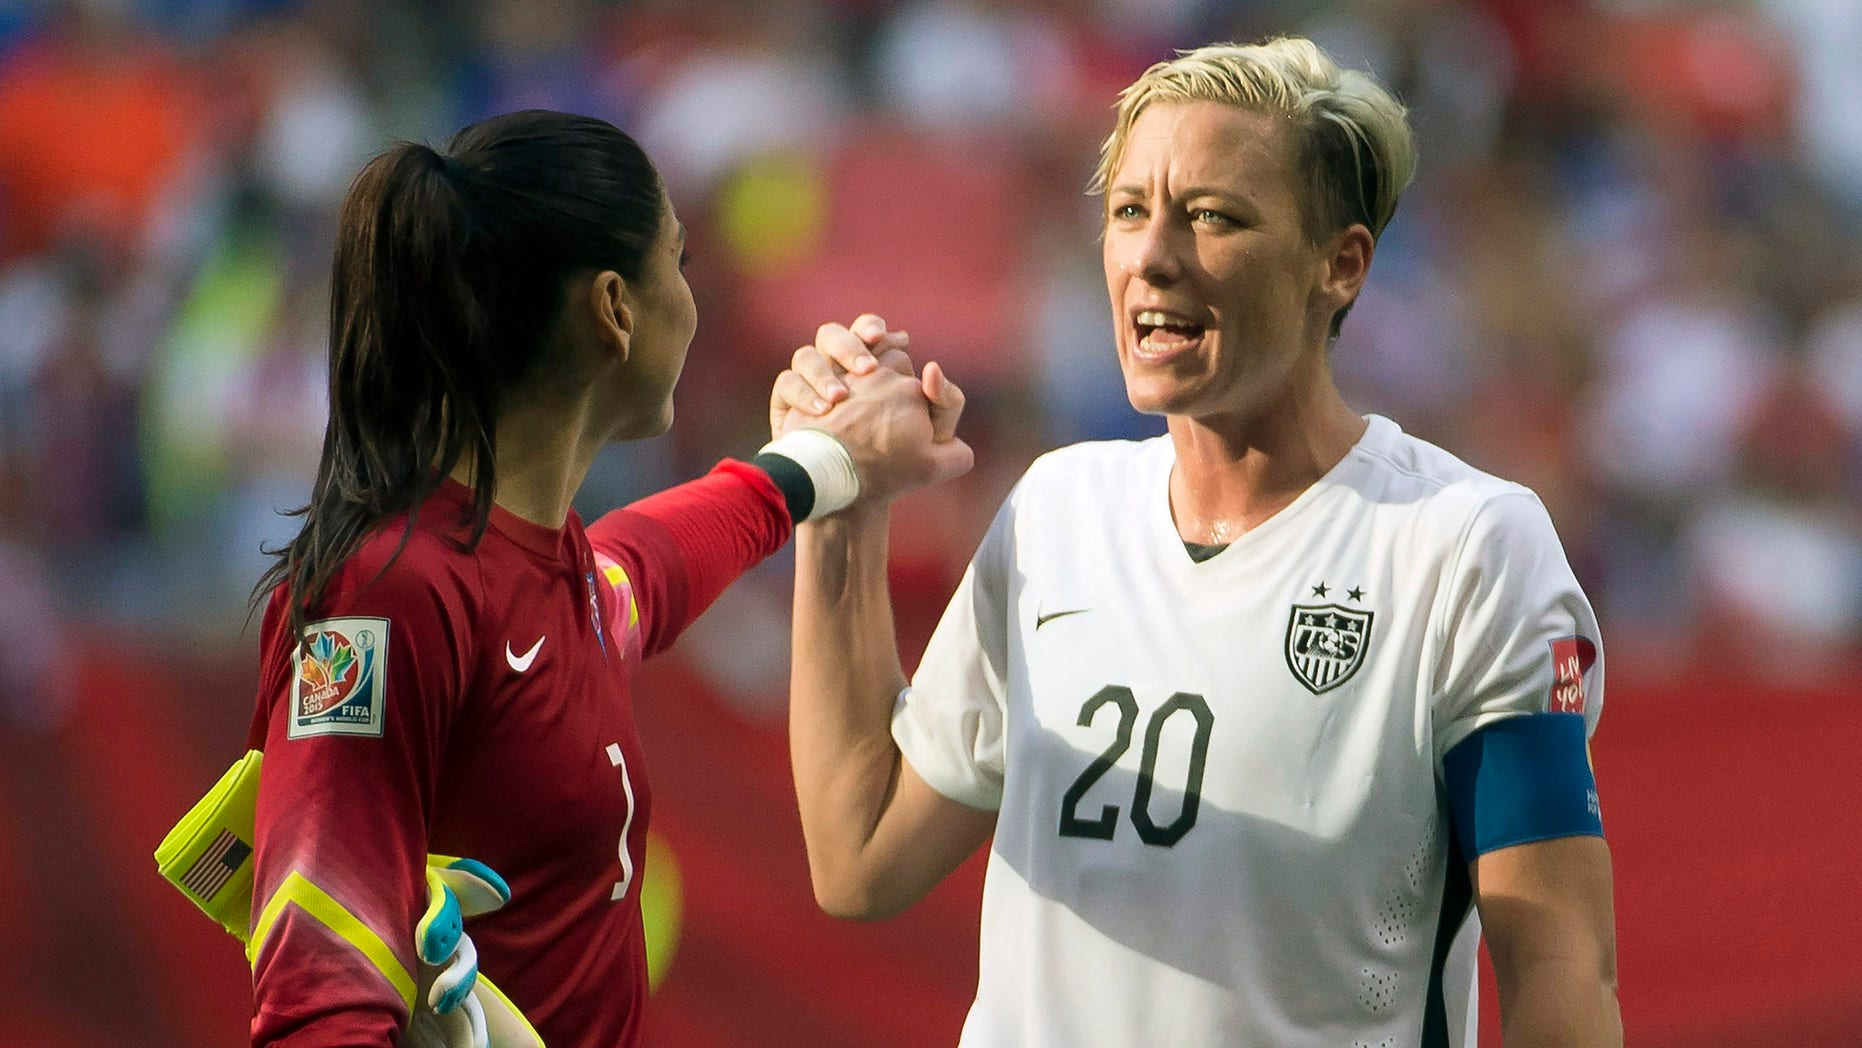 United States' Abby Wambach (20) celebrates her team's win with goal keeper Hope Solo following the second half of a FIFA Women's World Cup soccer match, Tuesday, June 16, 2015 in Vancouver, New Brunswick, Canada (Jonathan Hayward/The Canadian Press via AP) MANDATORY CREDIT